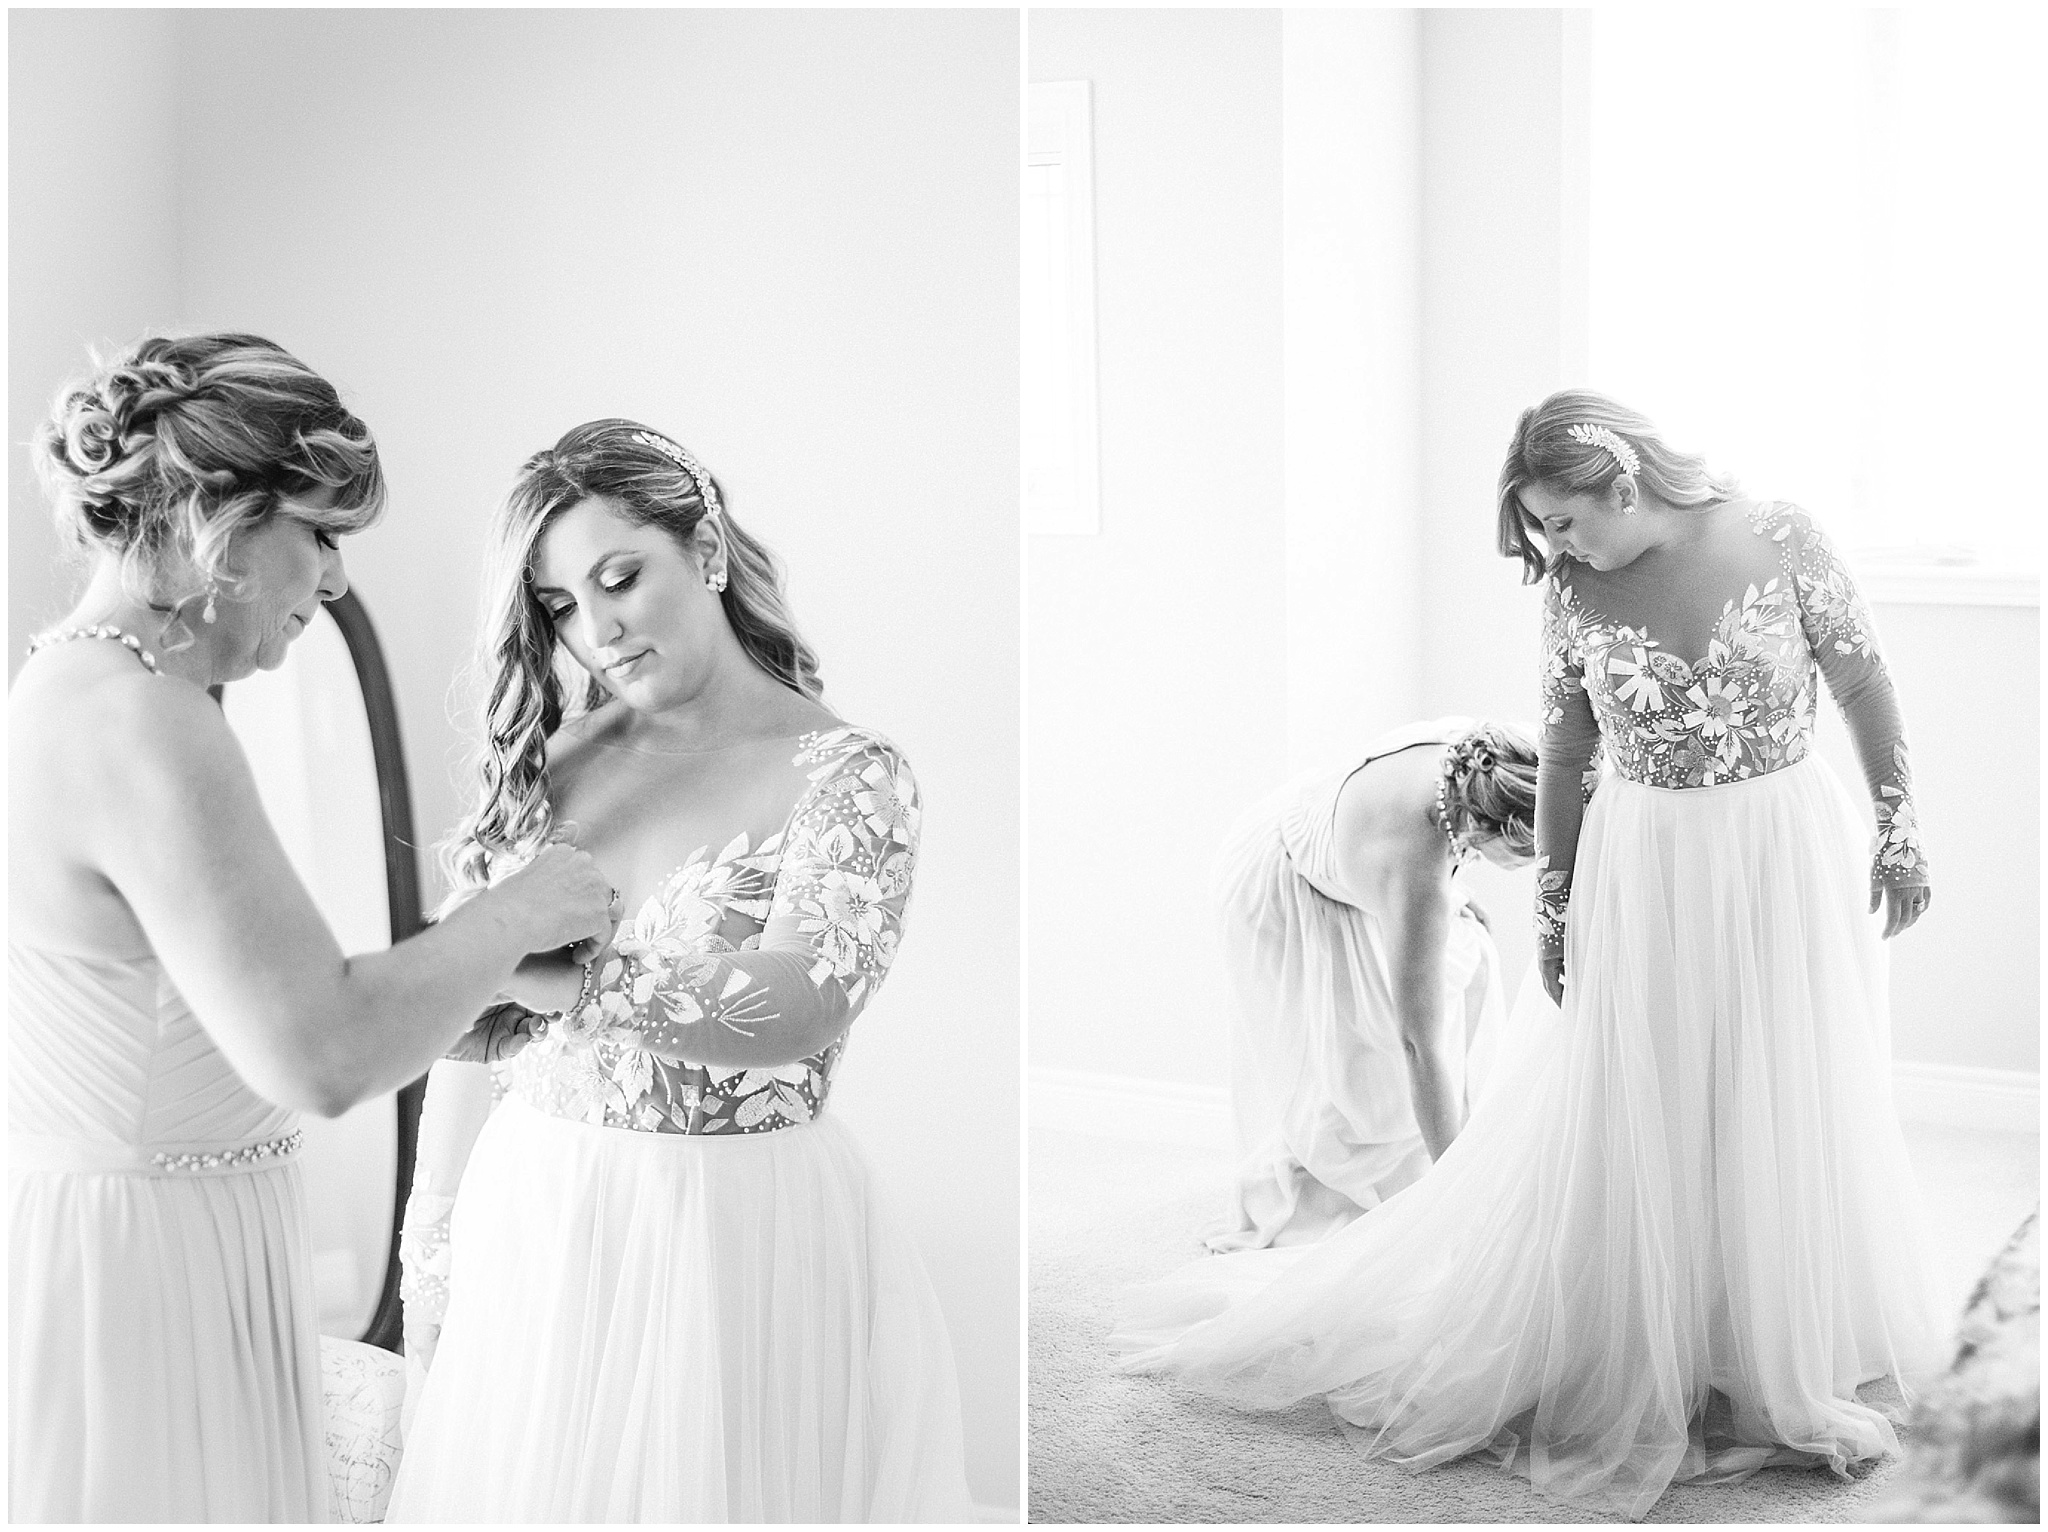 Stunning bride getting ready in Remmington gown by Hayley Paige, from Pearl Bridal House. Photographed by Jenn Kavanagh Photography.